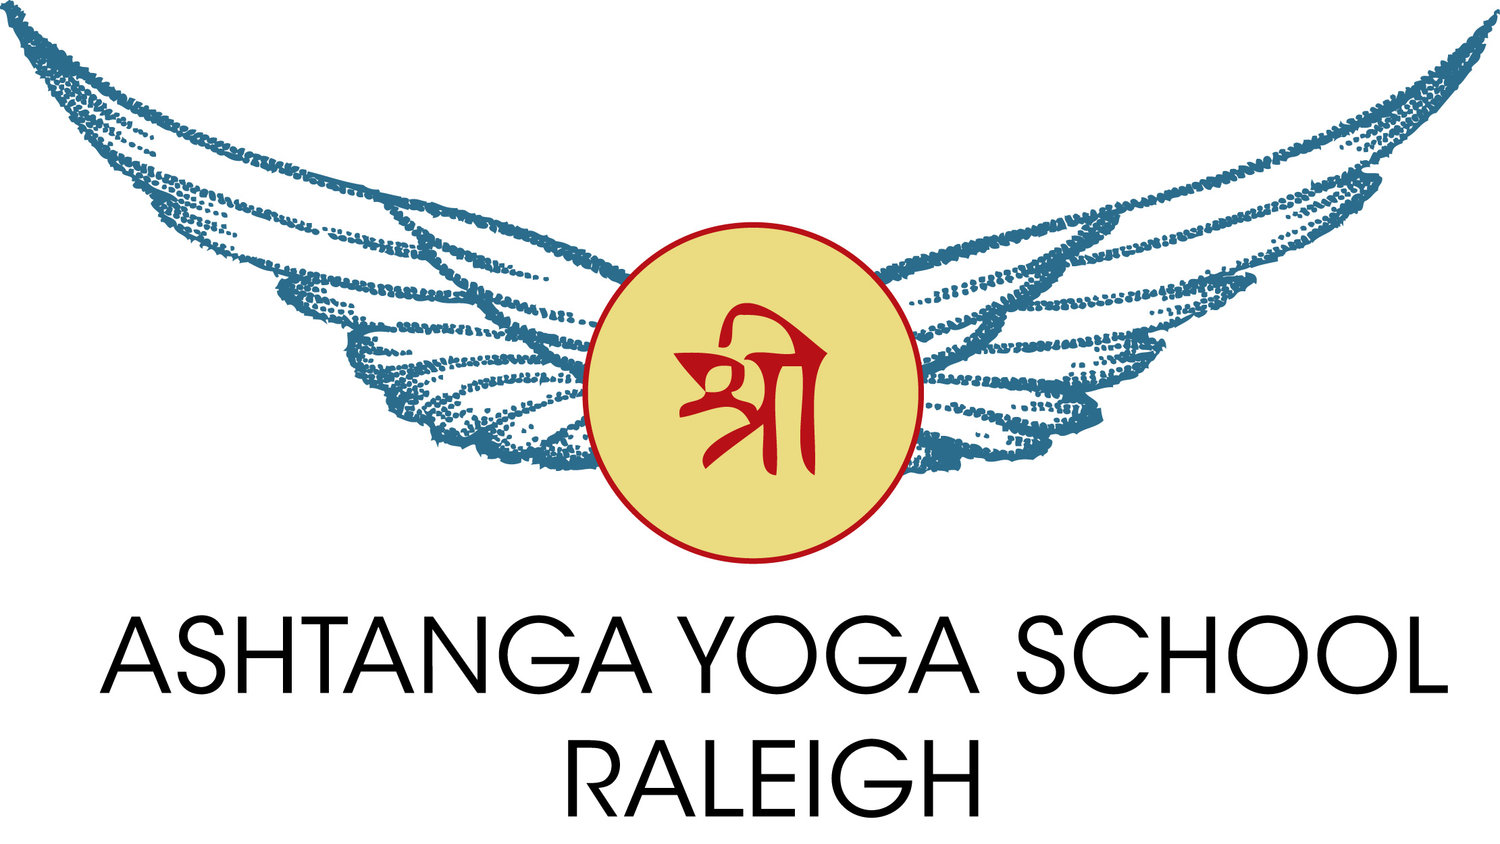 Ashtanga Yoga School Raleigh